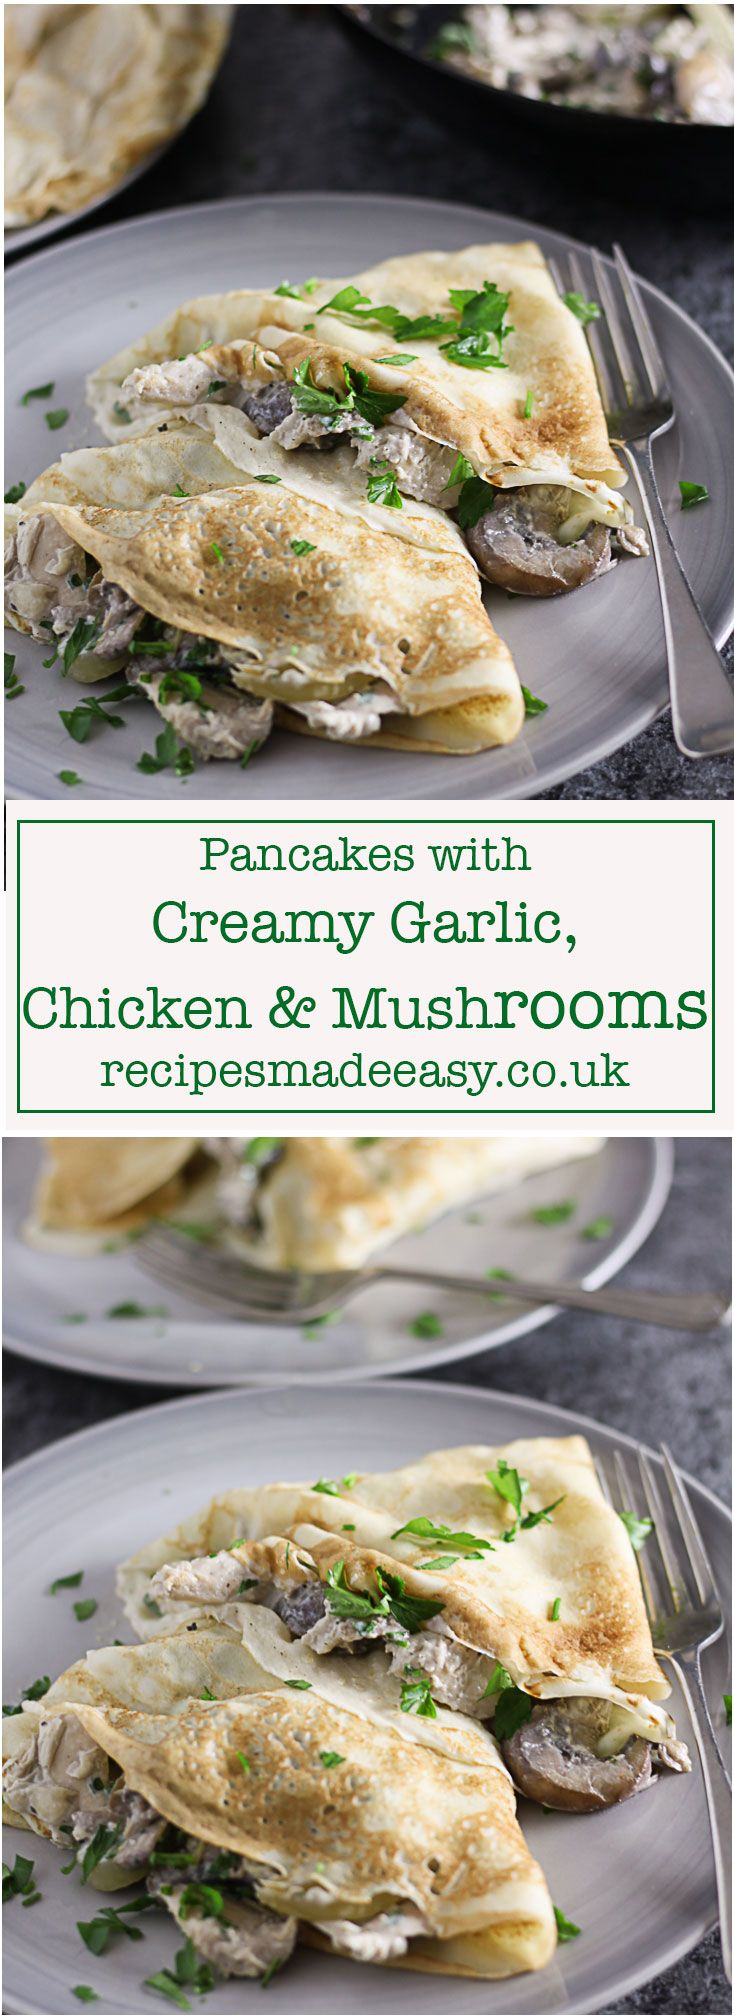 Delicious savoury pancakes filled with creamy garlic chicken and mushrooms, a delicious supper dish on pancake day or any day! via @jacdotbee